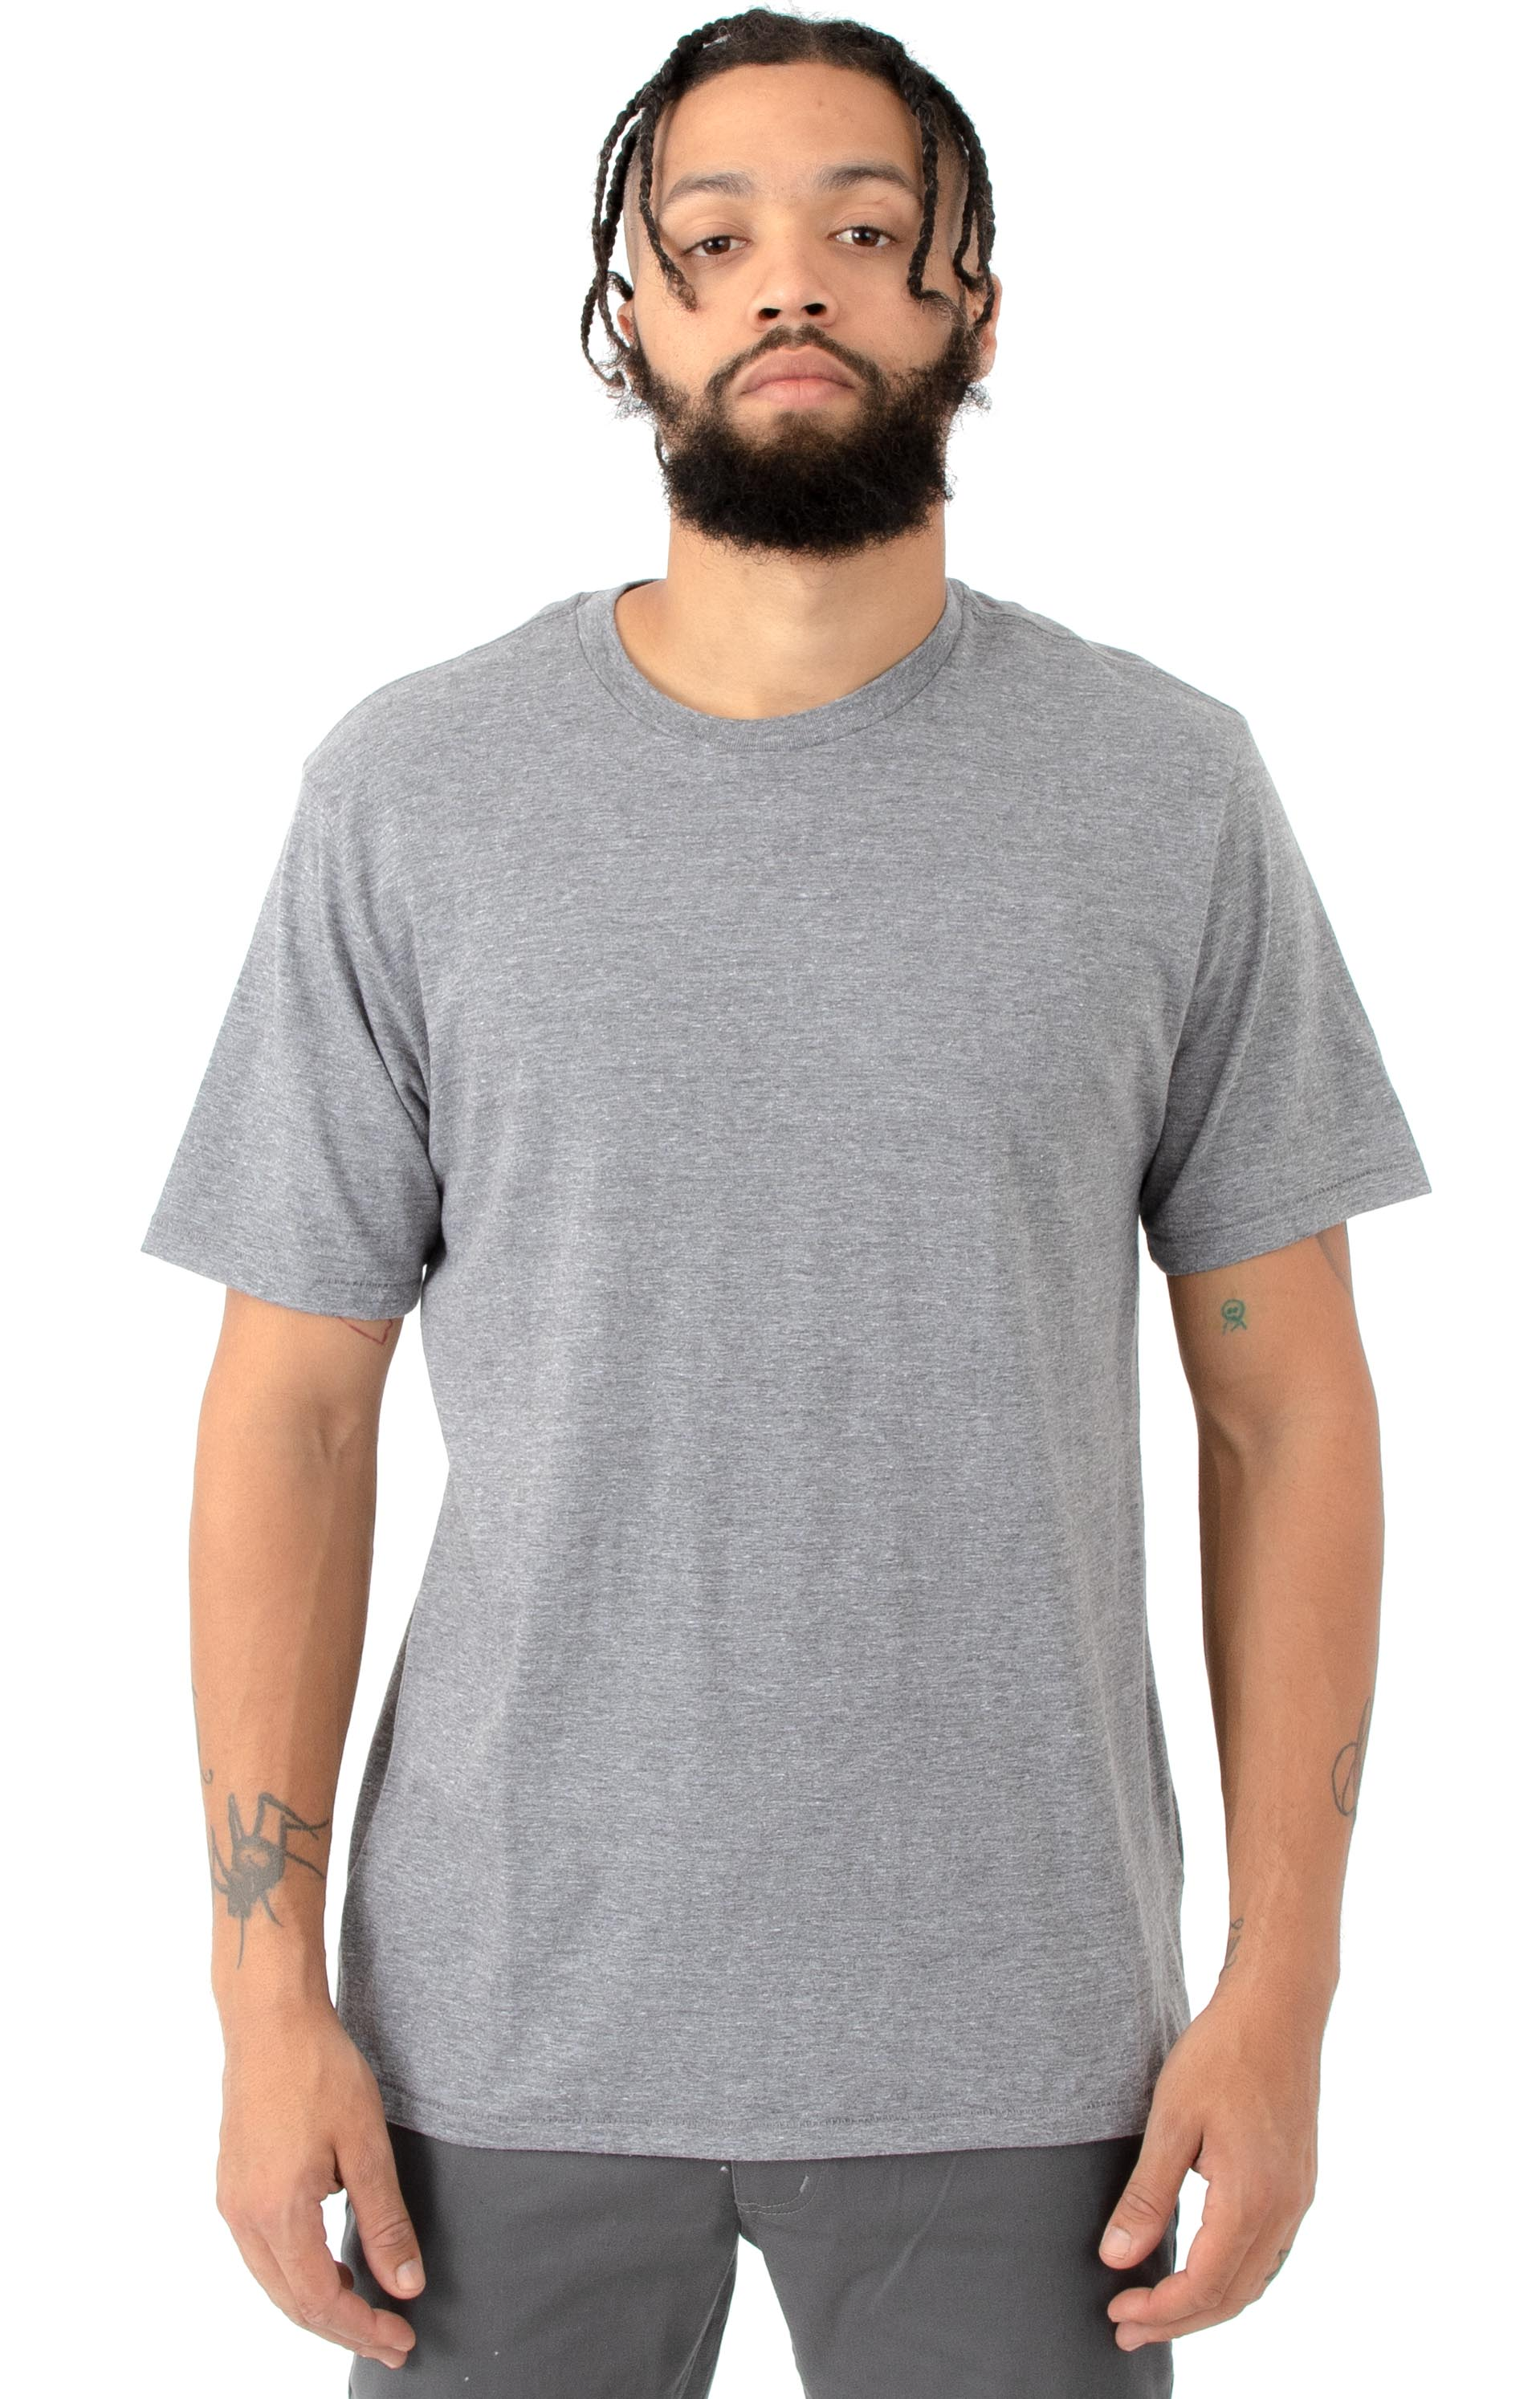 Basic Premium T-Shirt - Heather Grey